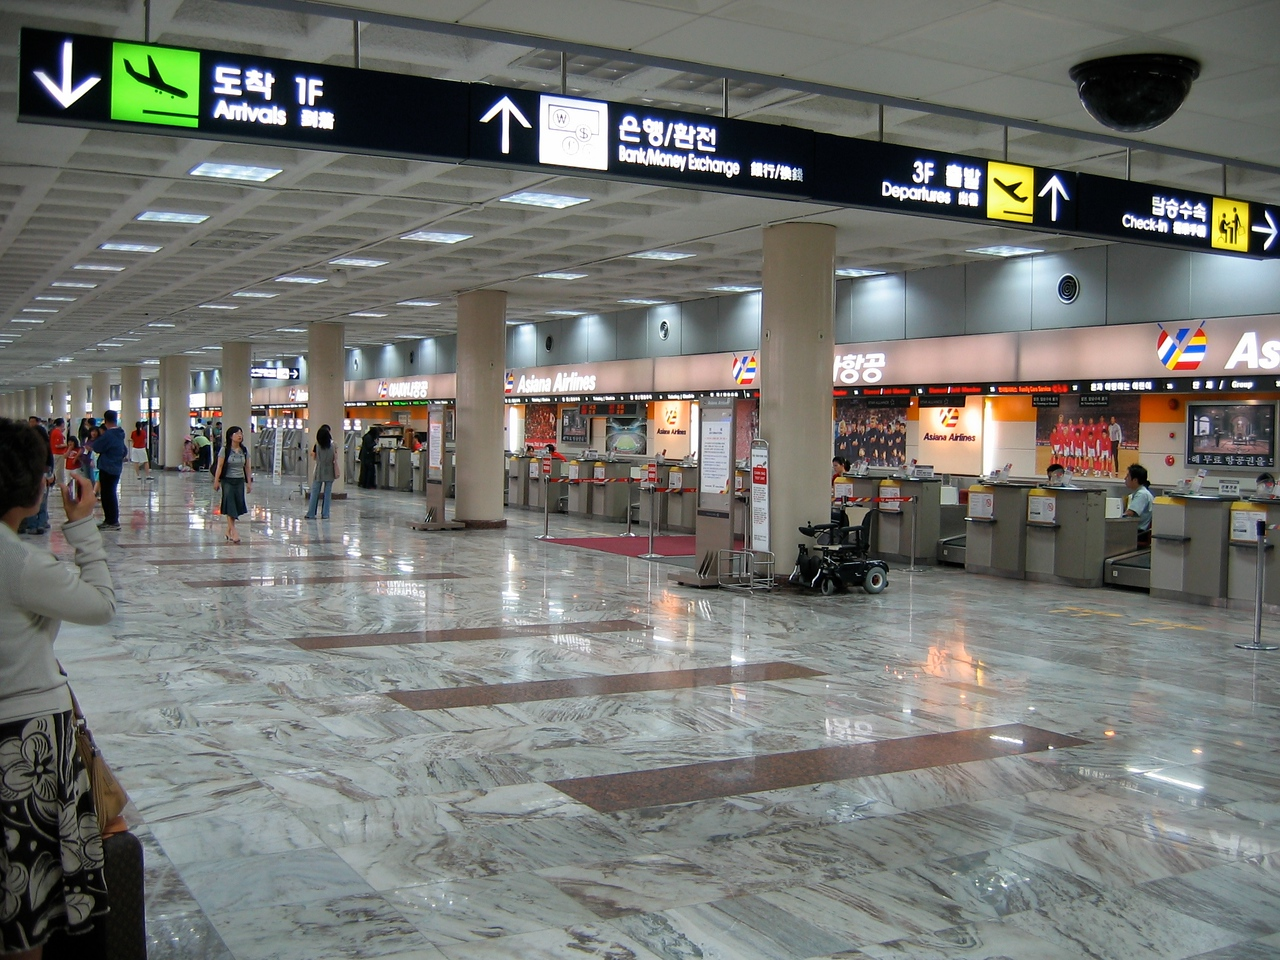 Gimpo AIrport ticketing area.  Gimpo is used for all domestic flights within Korea as of 2001.  International flights depart from Incheon International Airport about 35 miles away